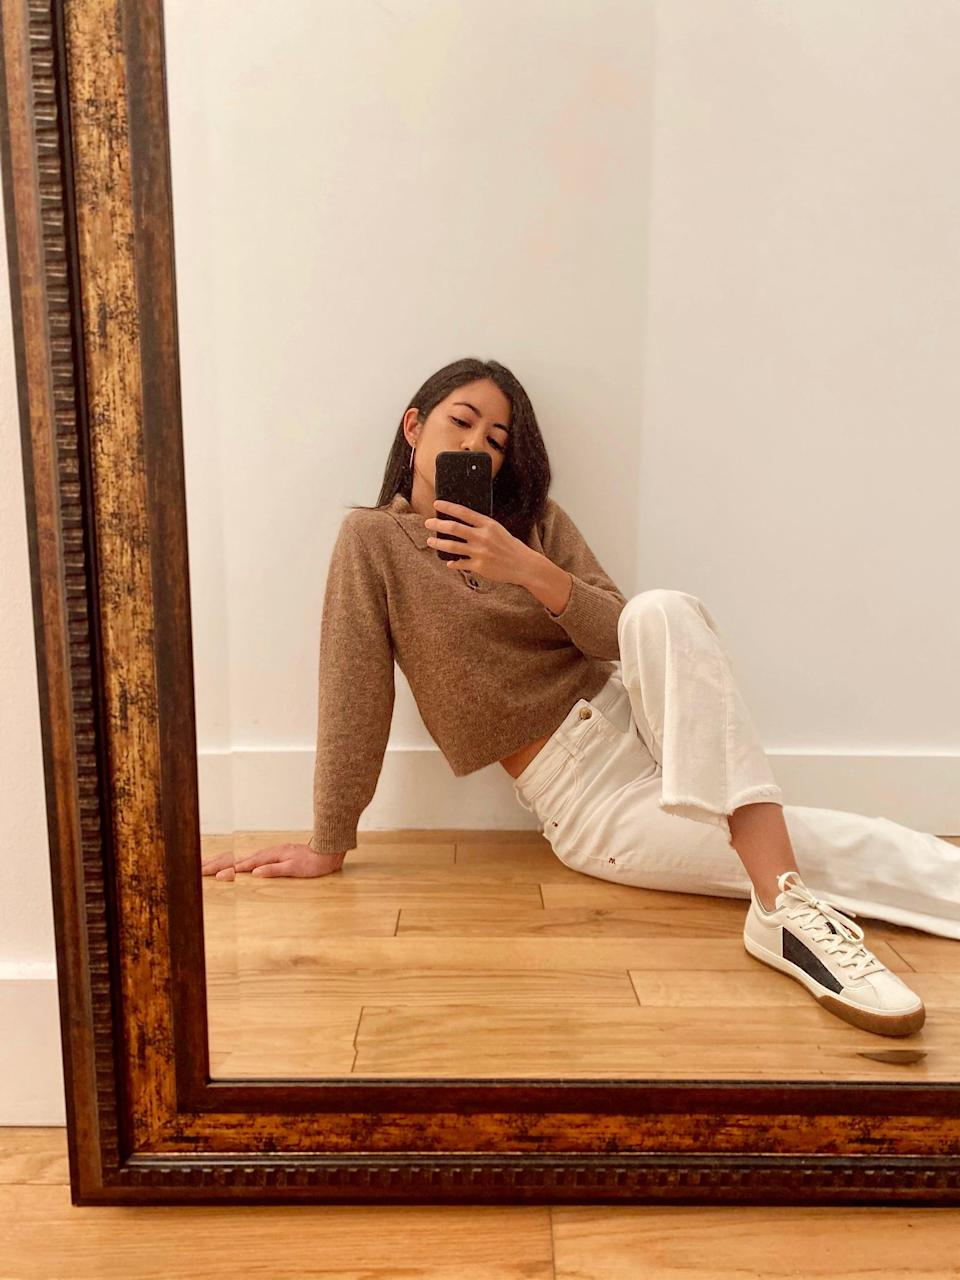 """<p>""""These days, I'm very much on board with anything positive, besides COVID-19 test results. Given the fashion industry's pollution problem, <a href=""""https://www.popsugar.com/fashion/what-is-sustainable-fashion-48012965"""" class=""""link rapid-noclick-resp"""" rel=""""nofollow noopener"""" target=""""_blank"""" data-ylk=""""slk:buying sustainable"""">buying sustainable</a> and/or upcycled clothing is a big priority for me in the new year. Because, let's be real, we could all use something optimistic to start 2021 off right.""""</p>"""